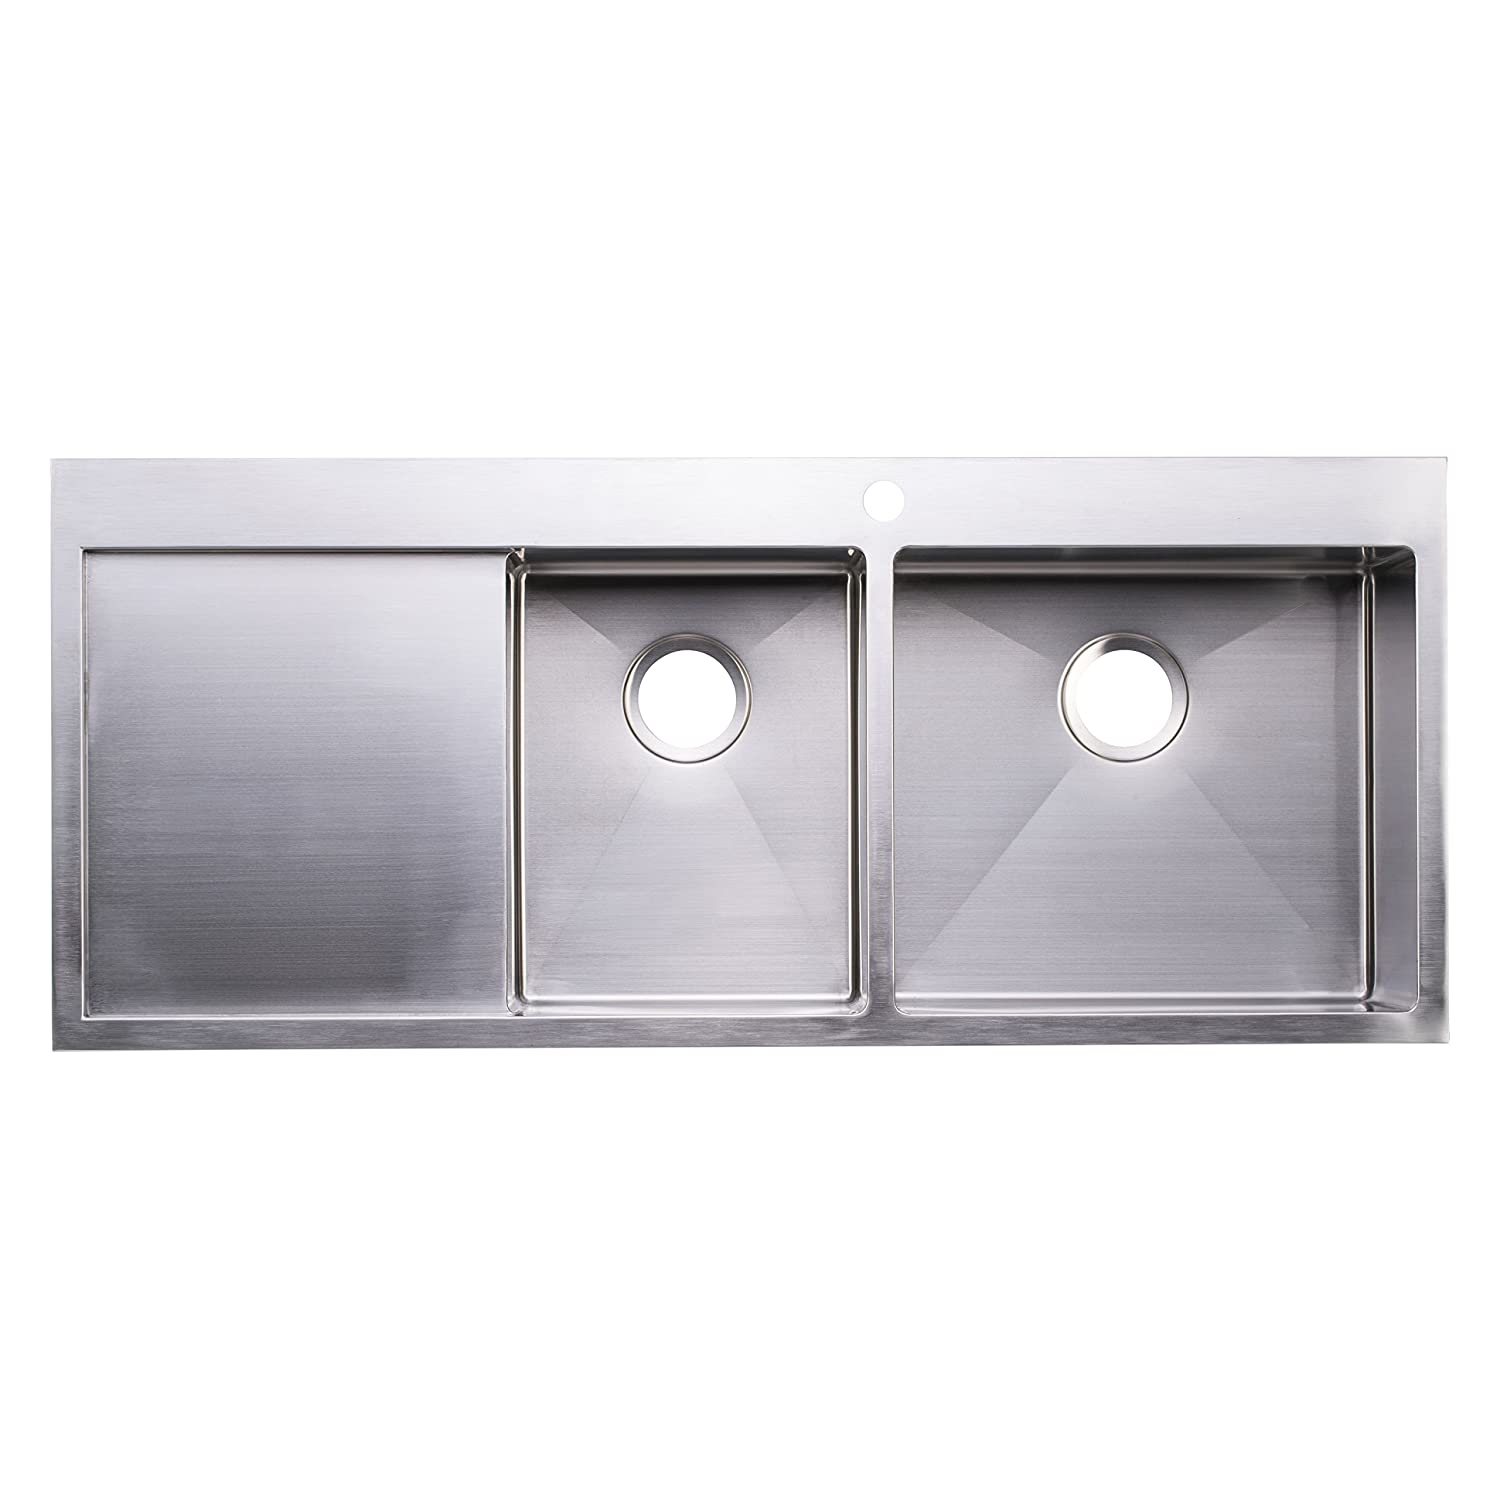 undermount sinks luxury inch z stainless ks gauge kitchen handmadekitchensinks cupc x steel sink bowl handmade radius zero single